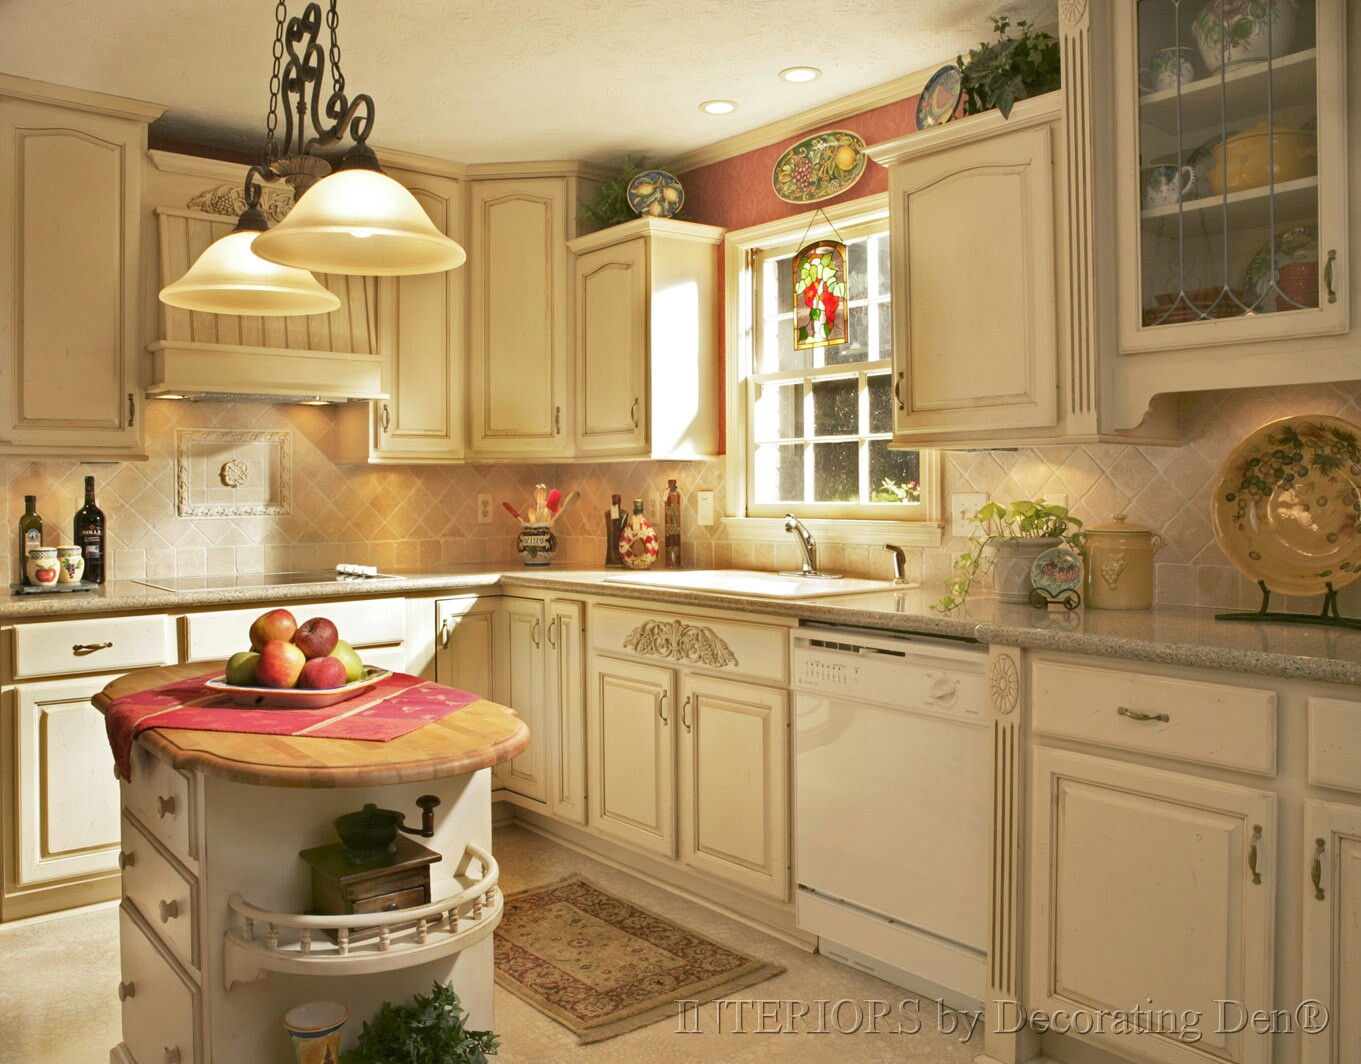 Important Kitchen Interior Design Components Final Article In Series How To Tie It All